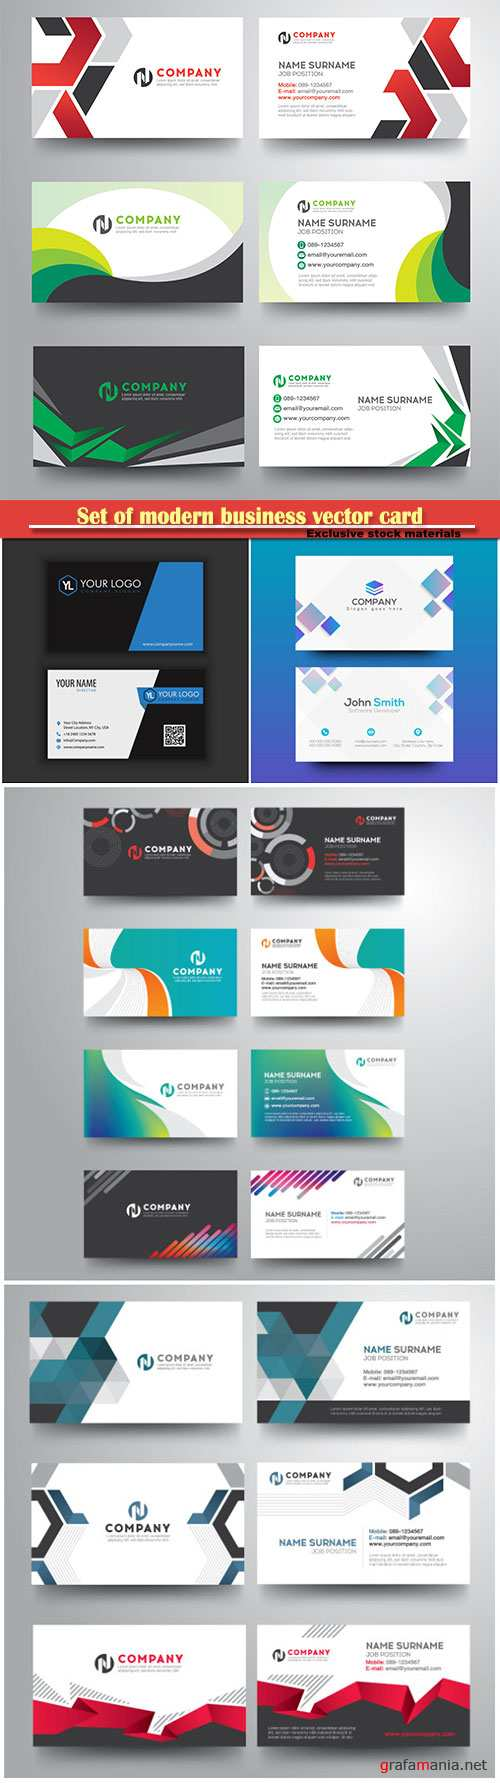 Set of modern business vector card, creative with geometric colorful